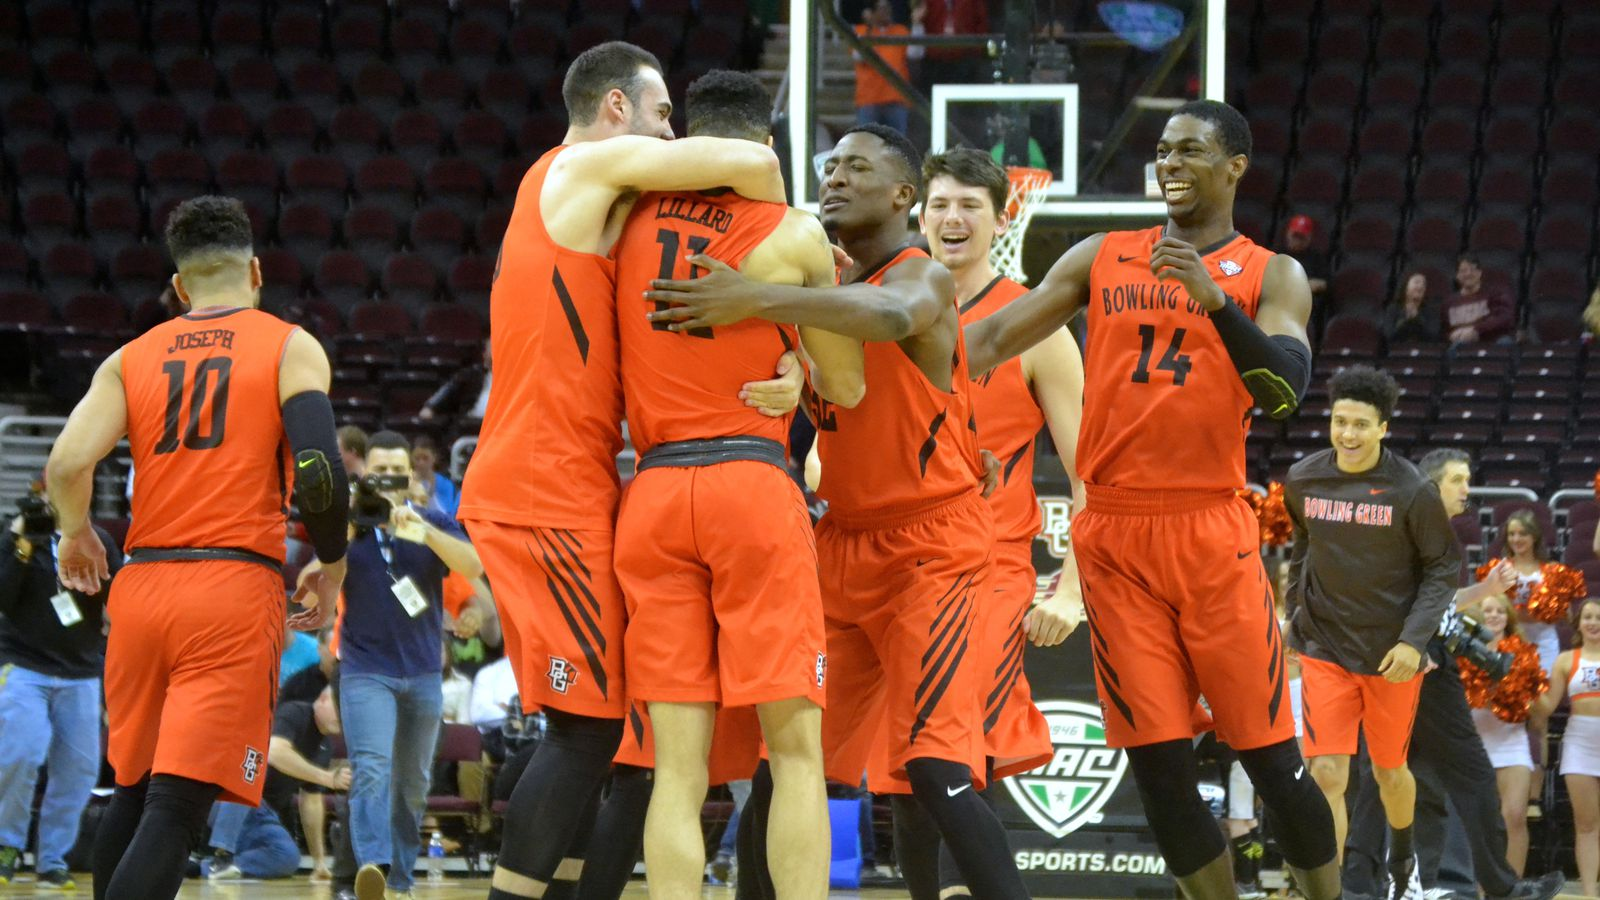 bowling green men The bowling green falcons men's basketball team is the basketball team that represent bowling green state university in bowling green, ohio the school's team currently competes in the.